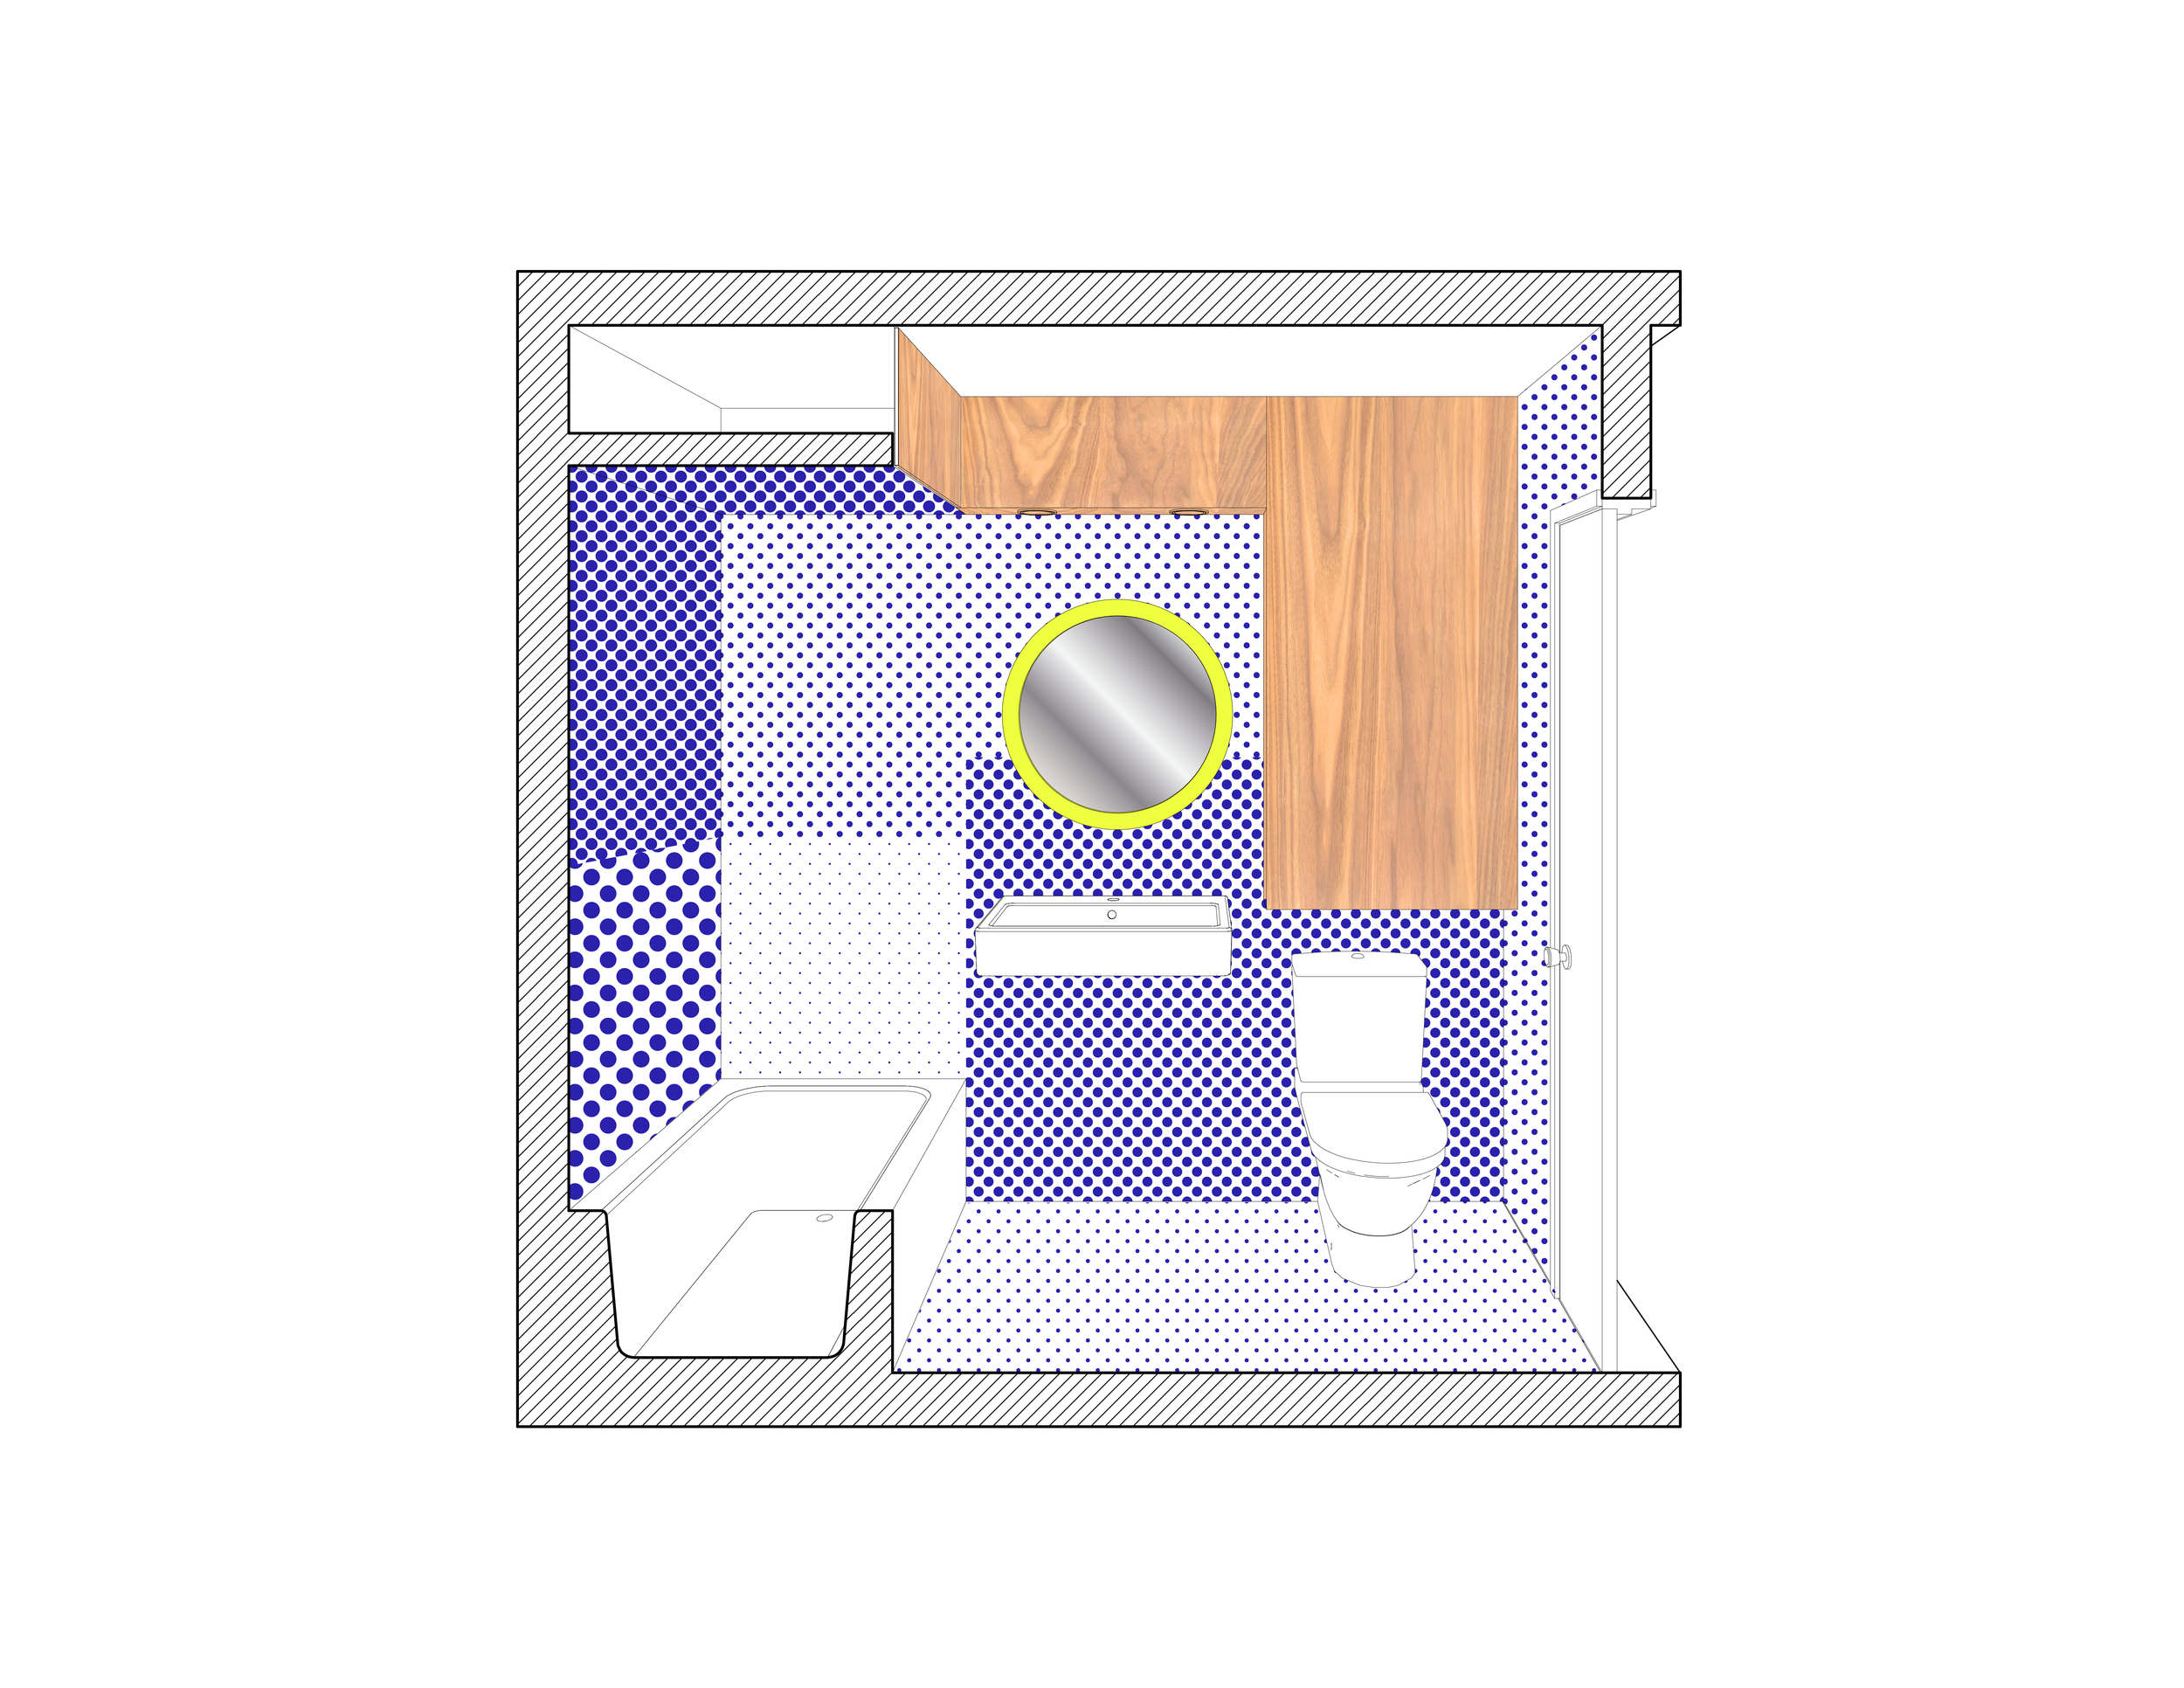 Watercloset-perspective.png